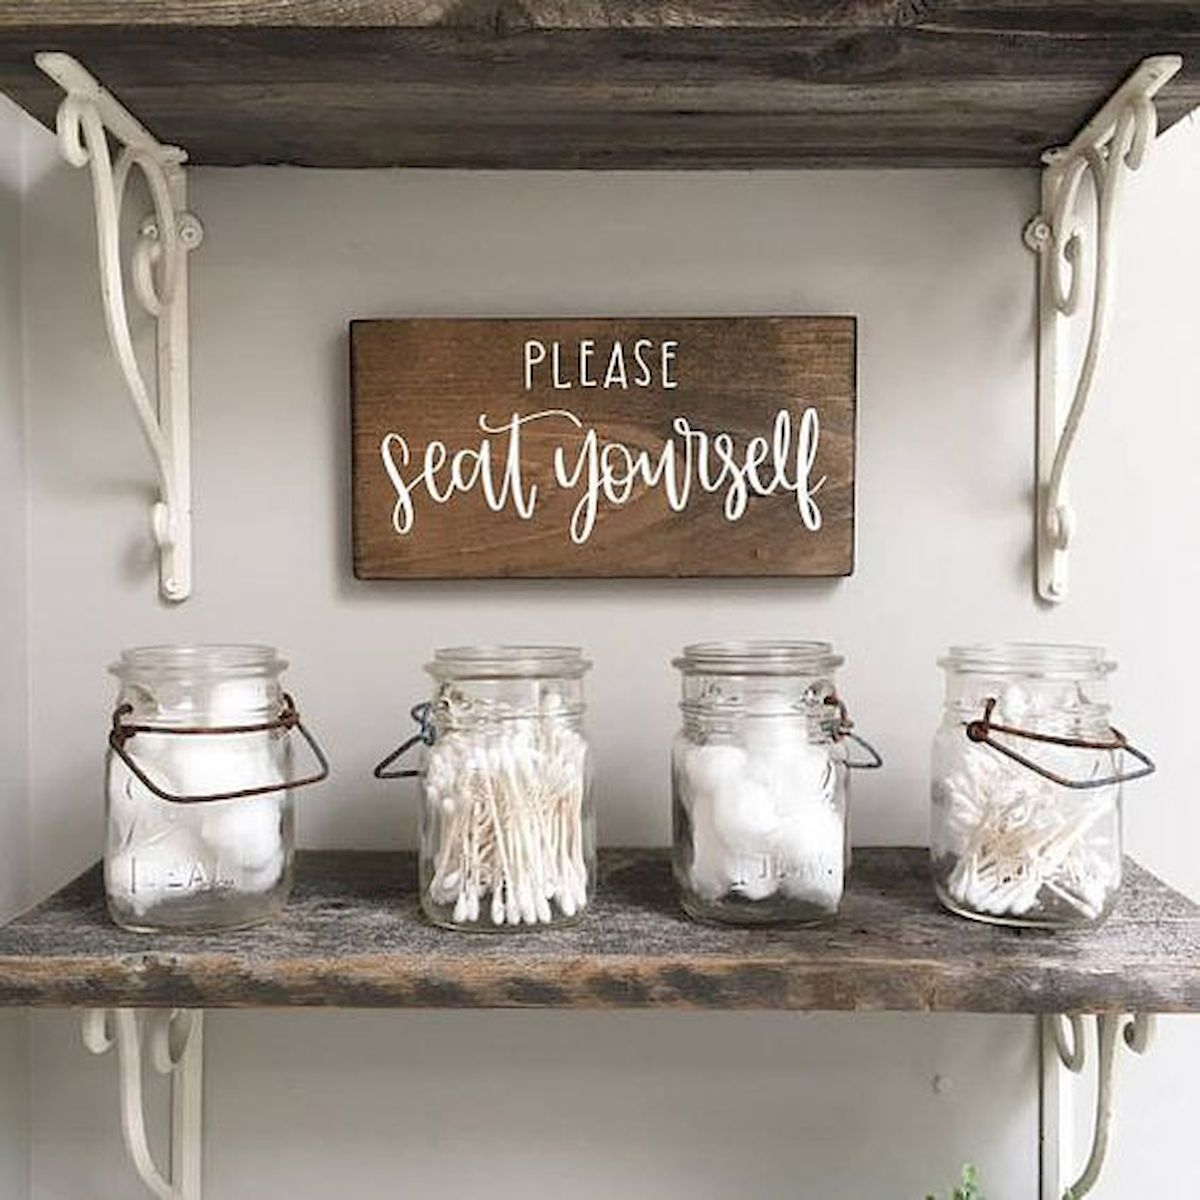 60 Fantastic DIY Rustic Home Decor Ideas - Ideaboz